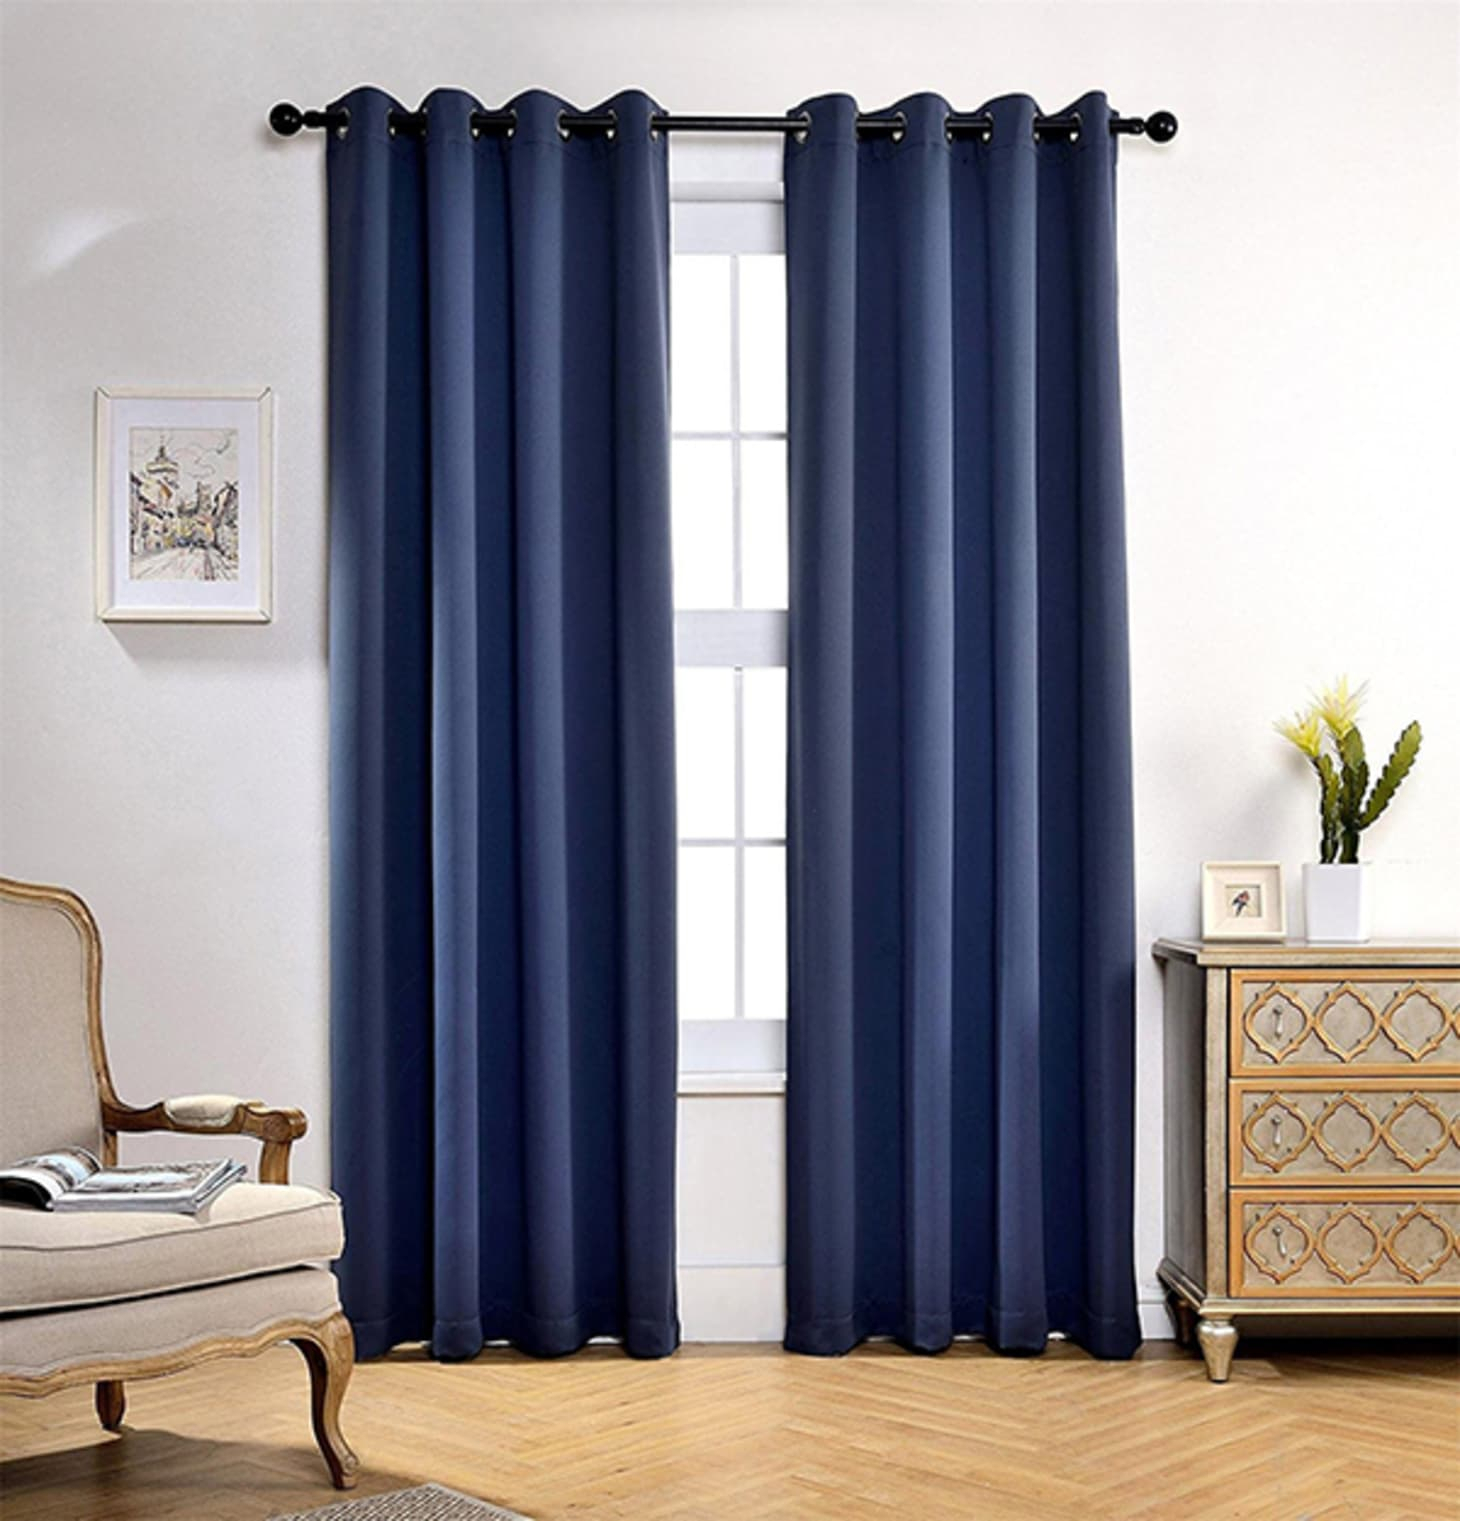 Best Insulated Blackout Curtains | Apartment Therapy Regarding Insulated Cotton Curtain Panel Pairs (View 13 of 20)